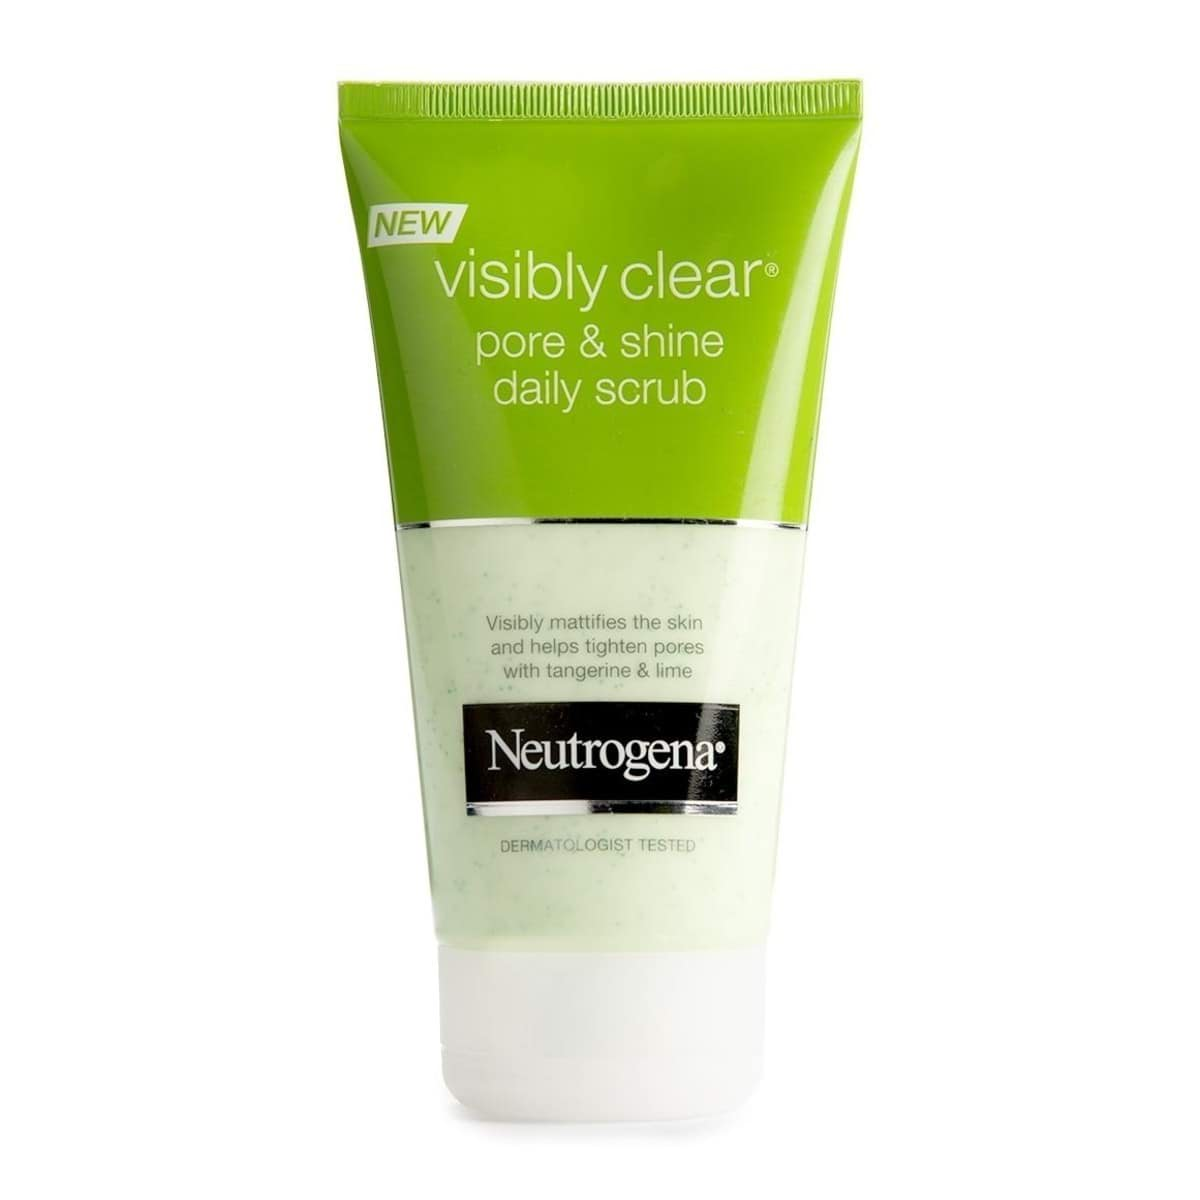 Neutrogena-Visibly-Clear-Pore-Shine-Daily-Scrub-150ml-3574661034195